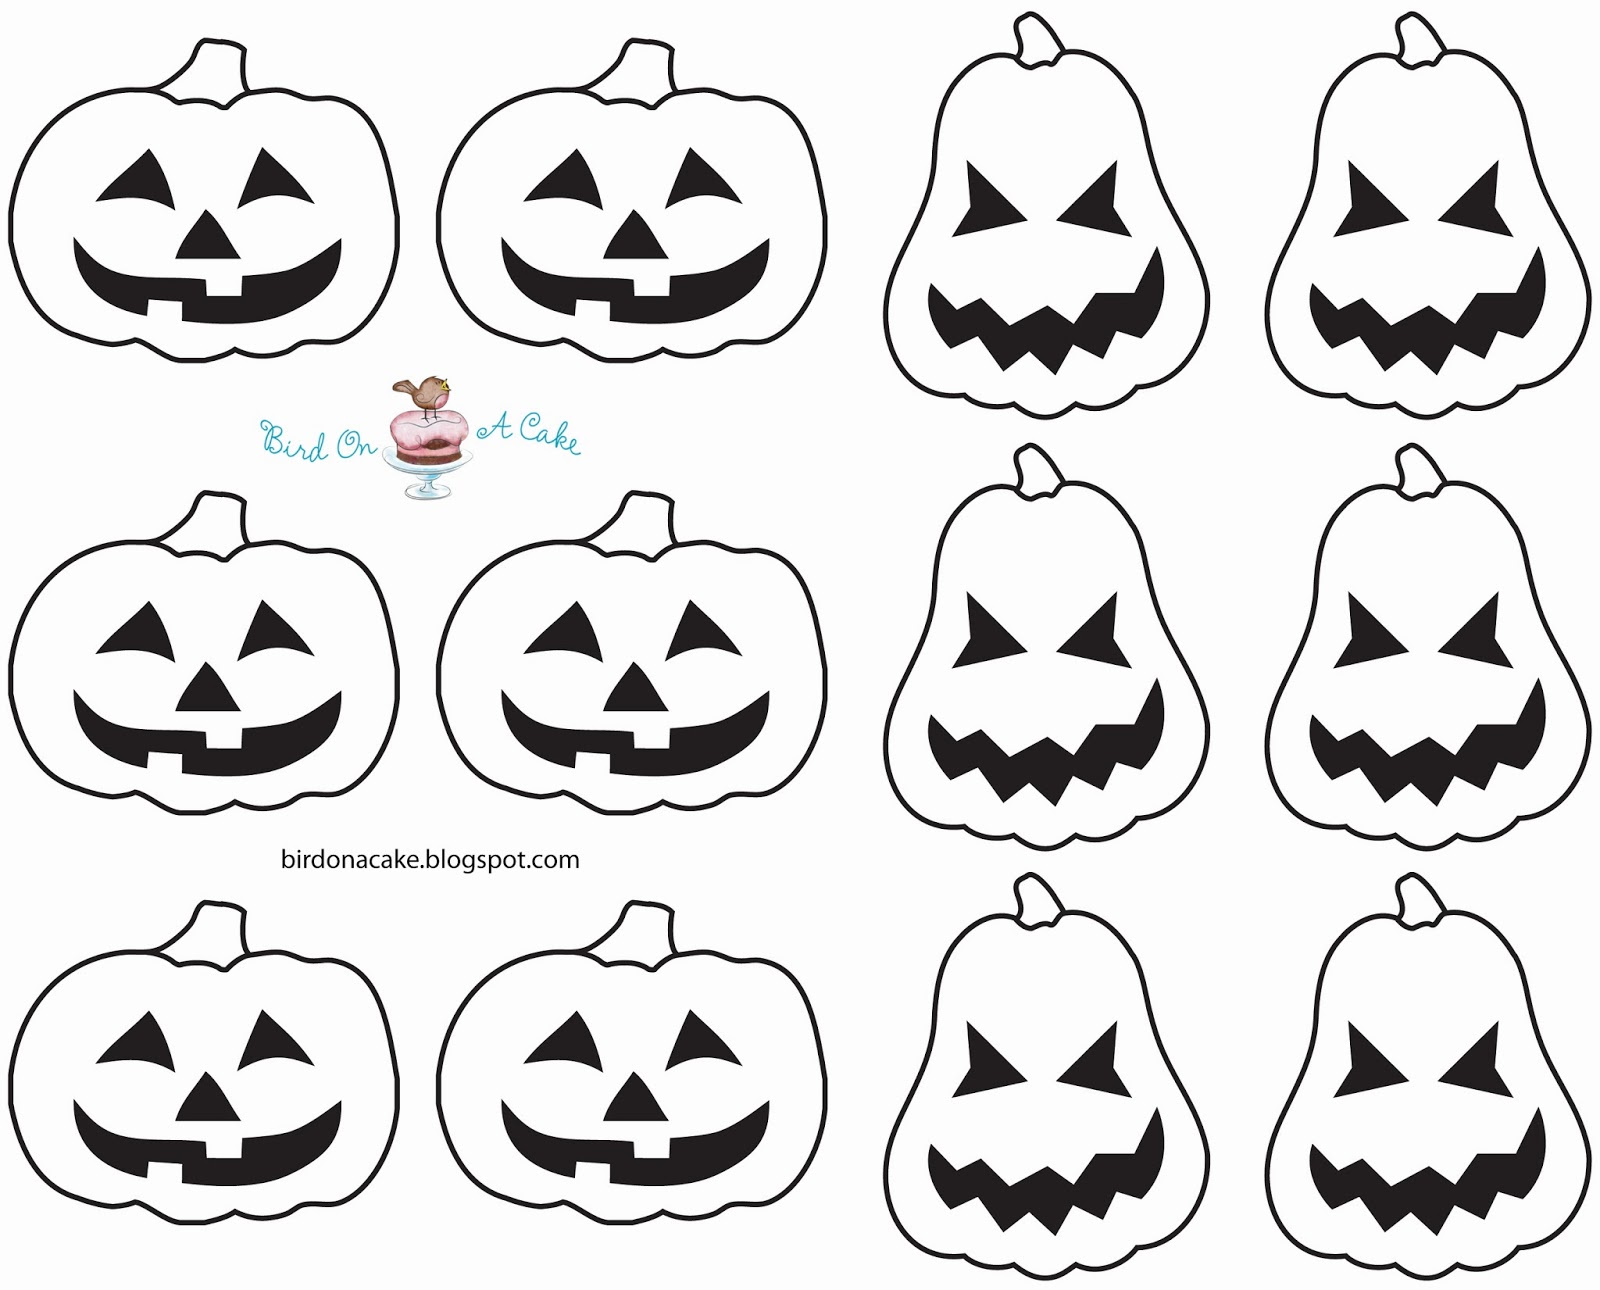 Bird On A Cake Jack O Lantern Cupcake Toppers With Template